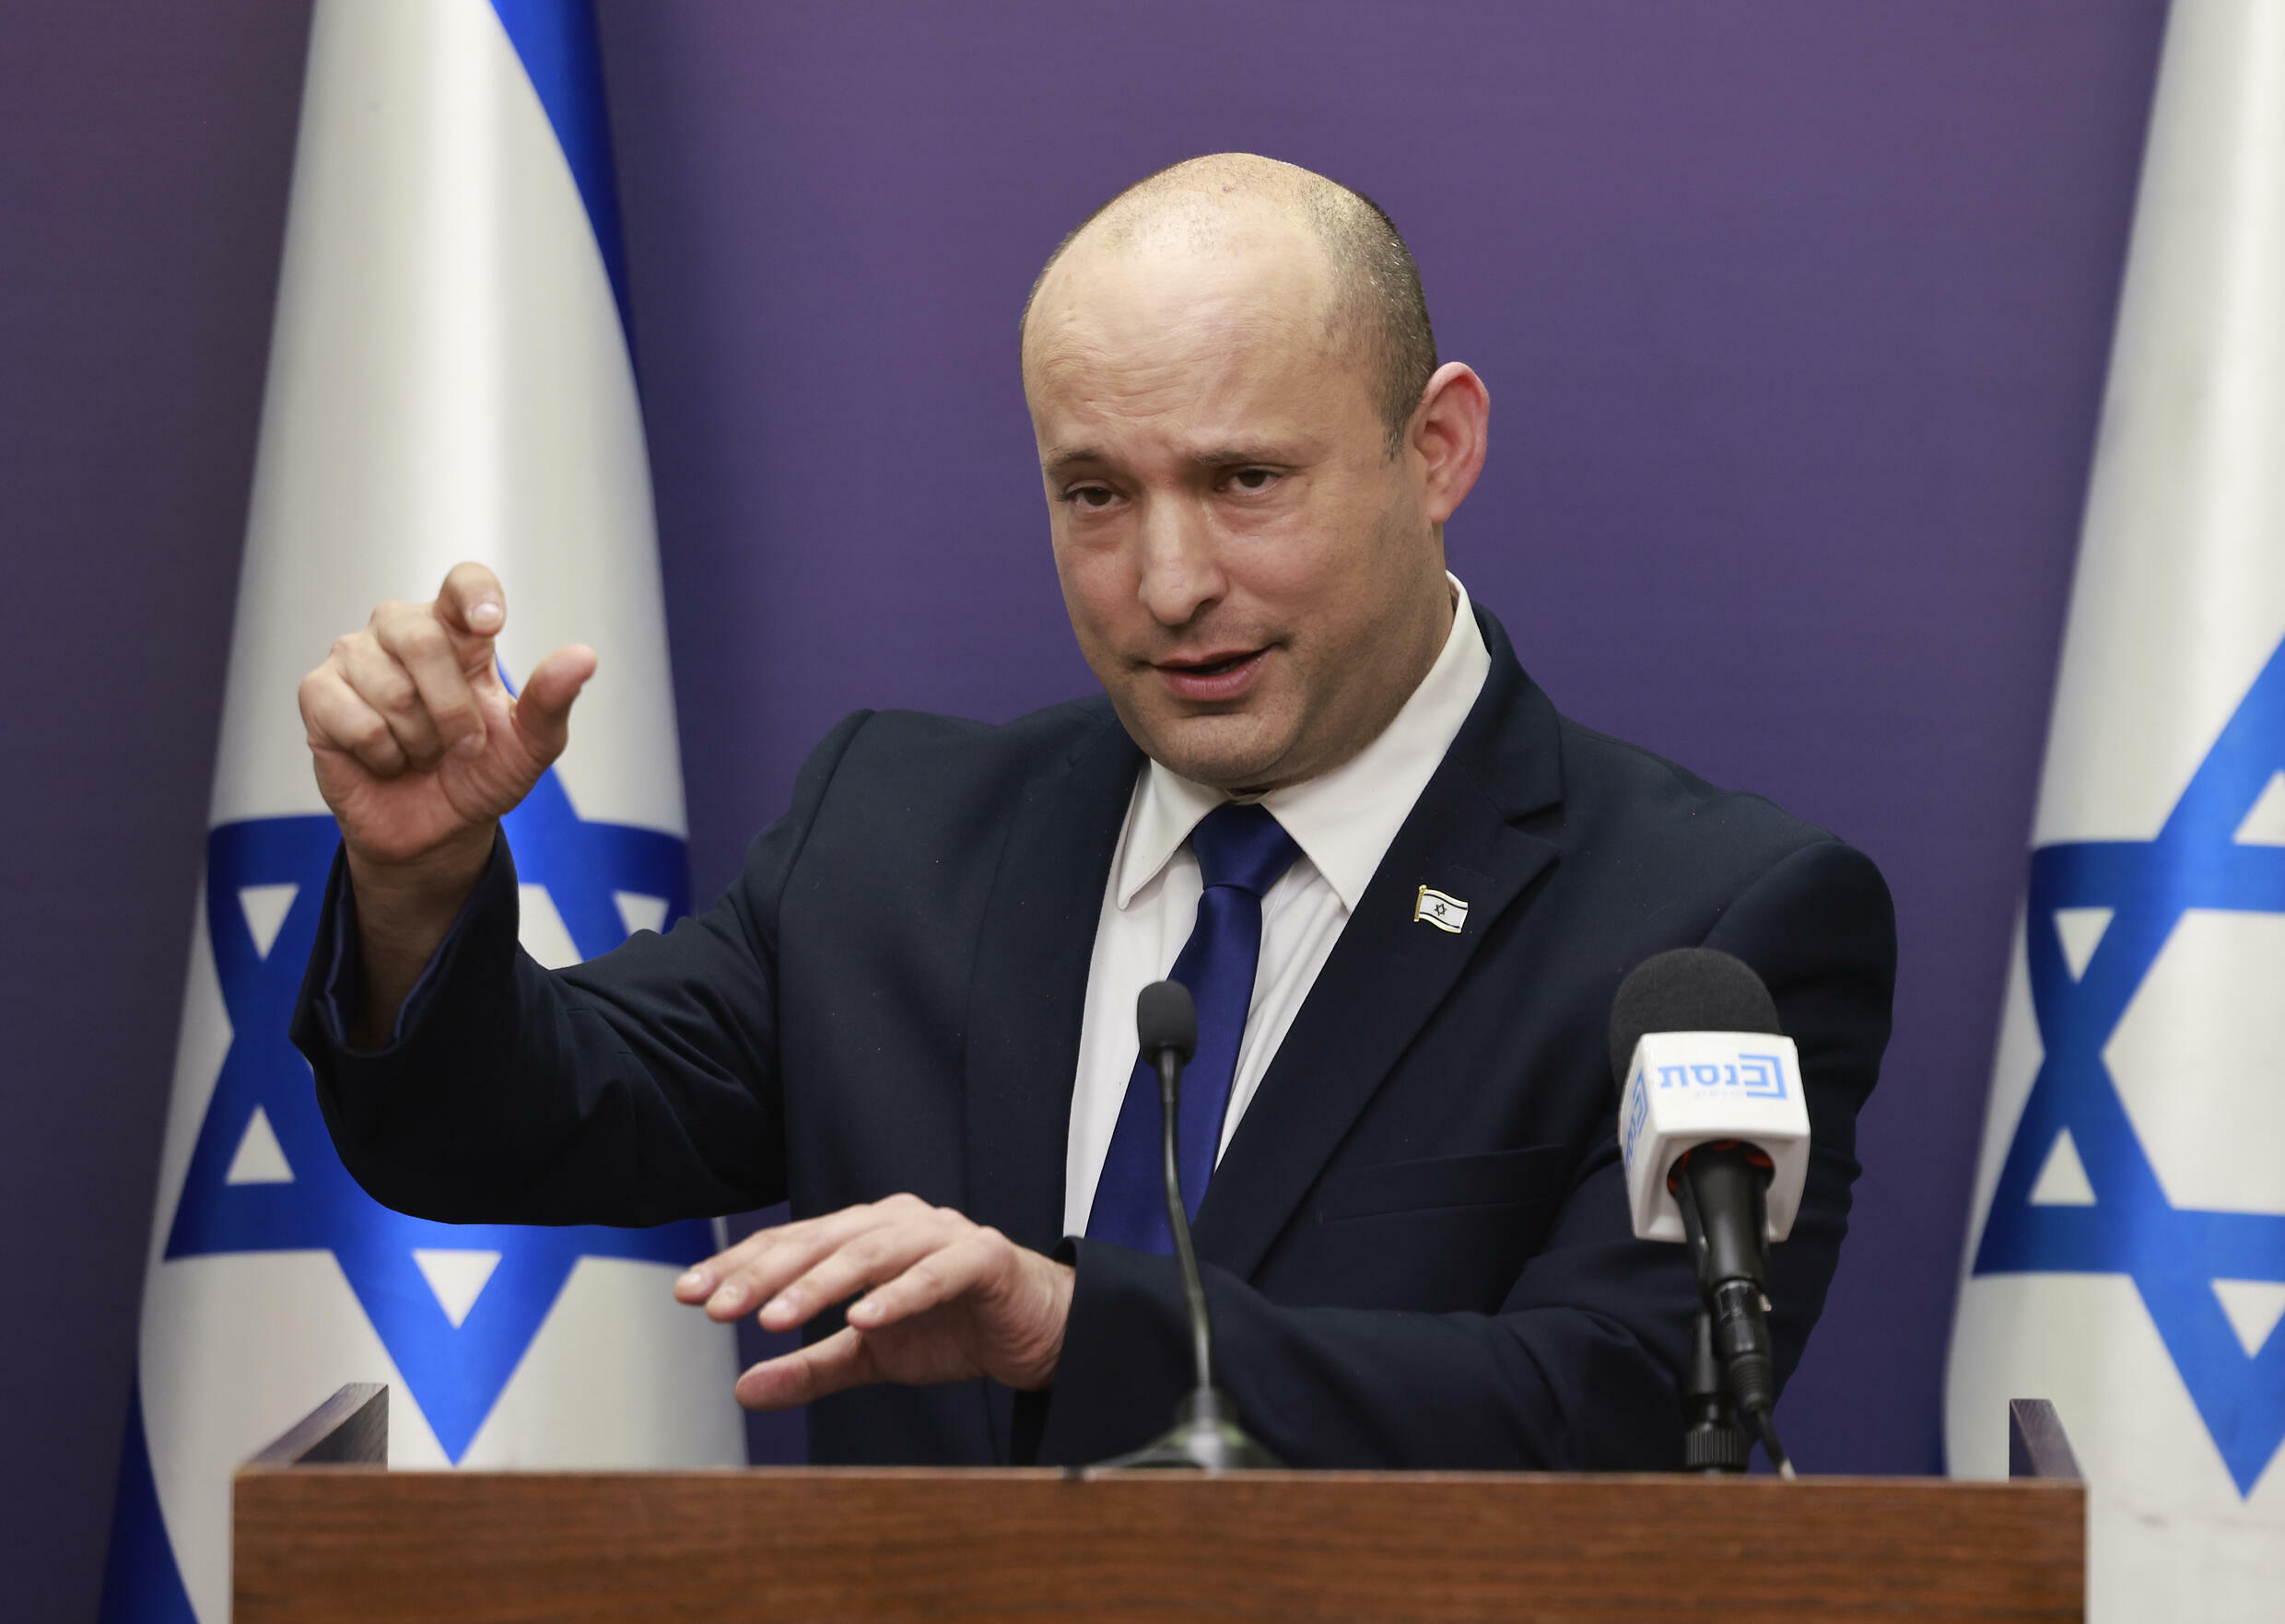 Israeli Prime Minister Naftali Bennett faces his first major blow since taking office as lawmakers fail to extend a controversial measure that denied Israeli citizenship and residency rights to Palestinian spouses from the West Bank and Gaza